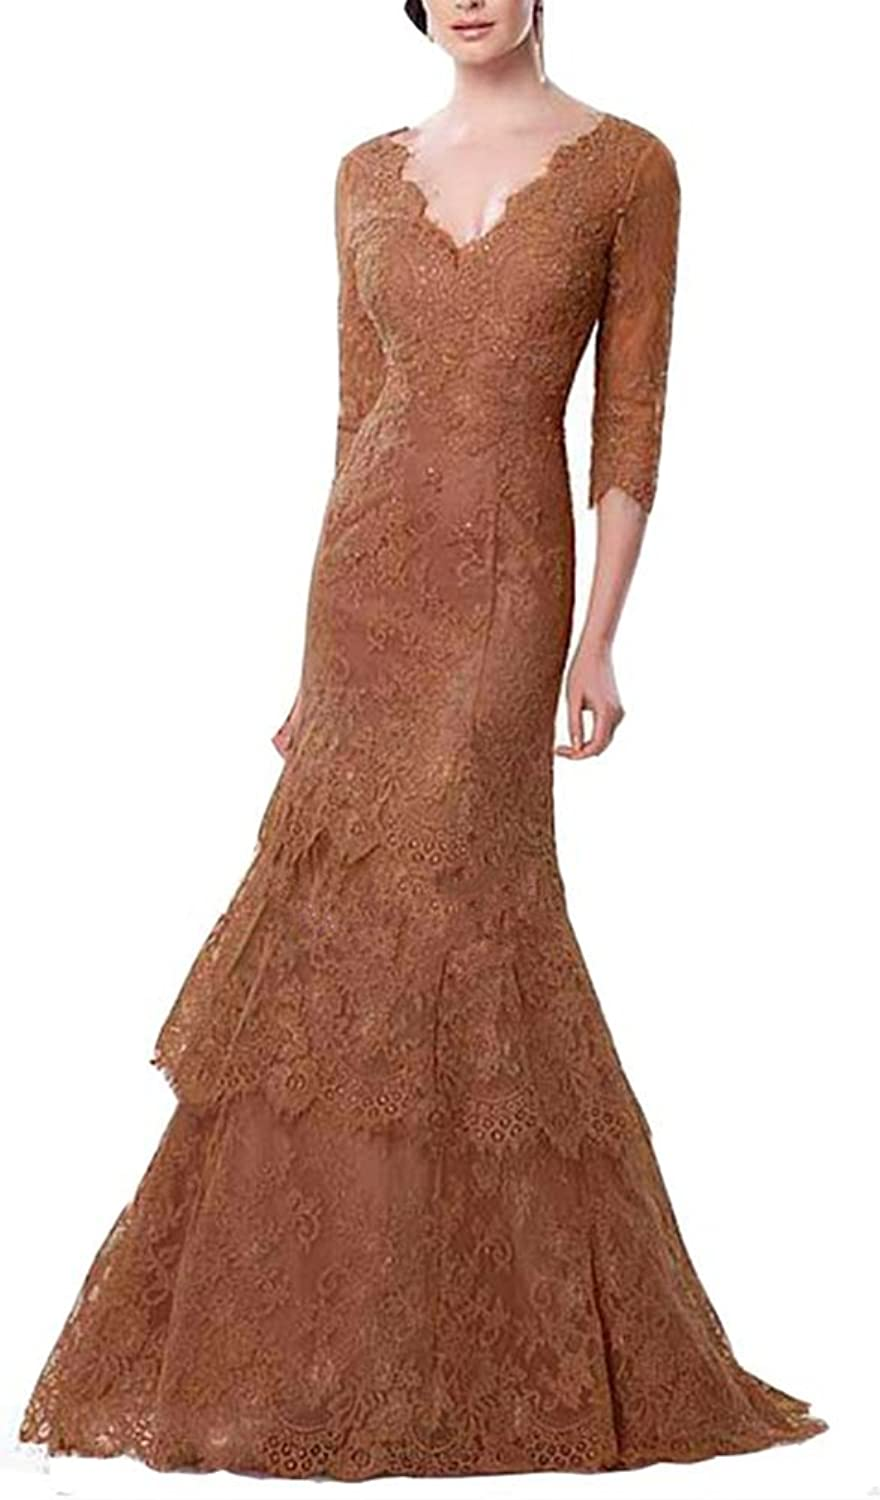 Emmani Women's Ball Gown vNeck Lace Mermaid Bride Mother